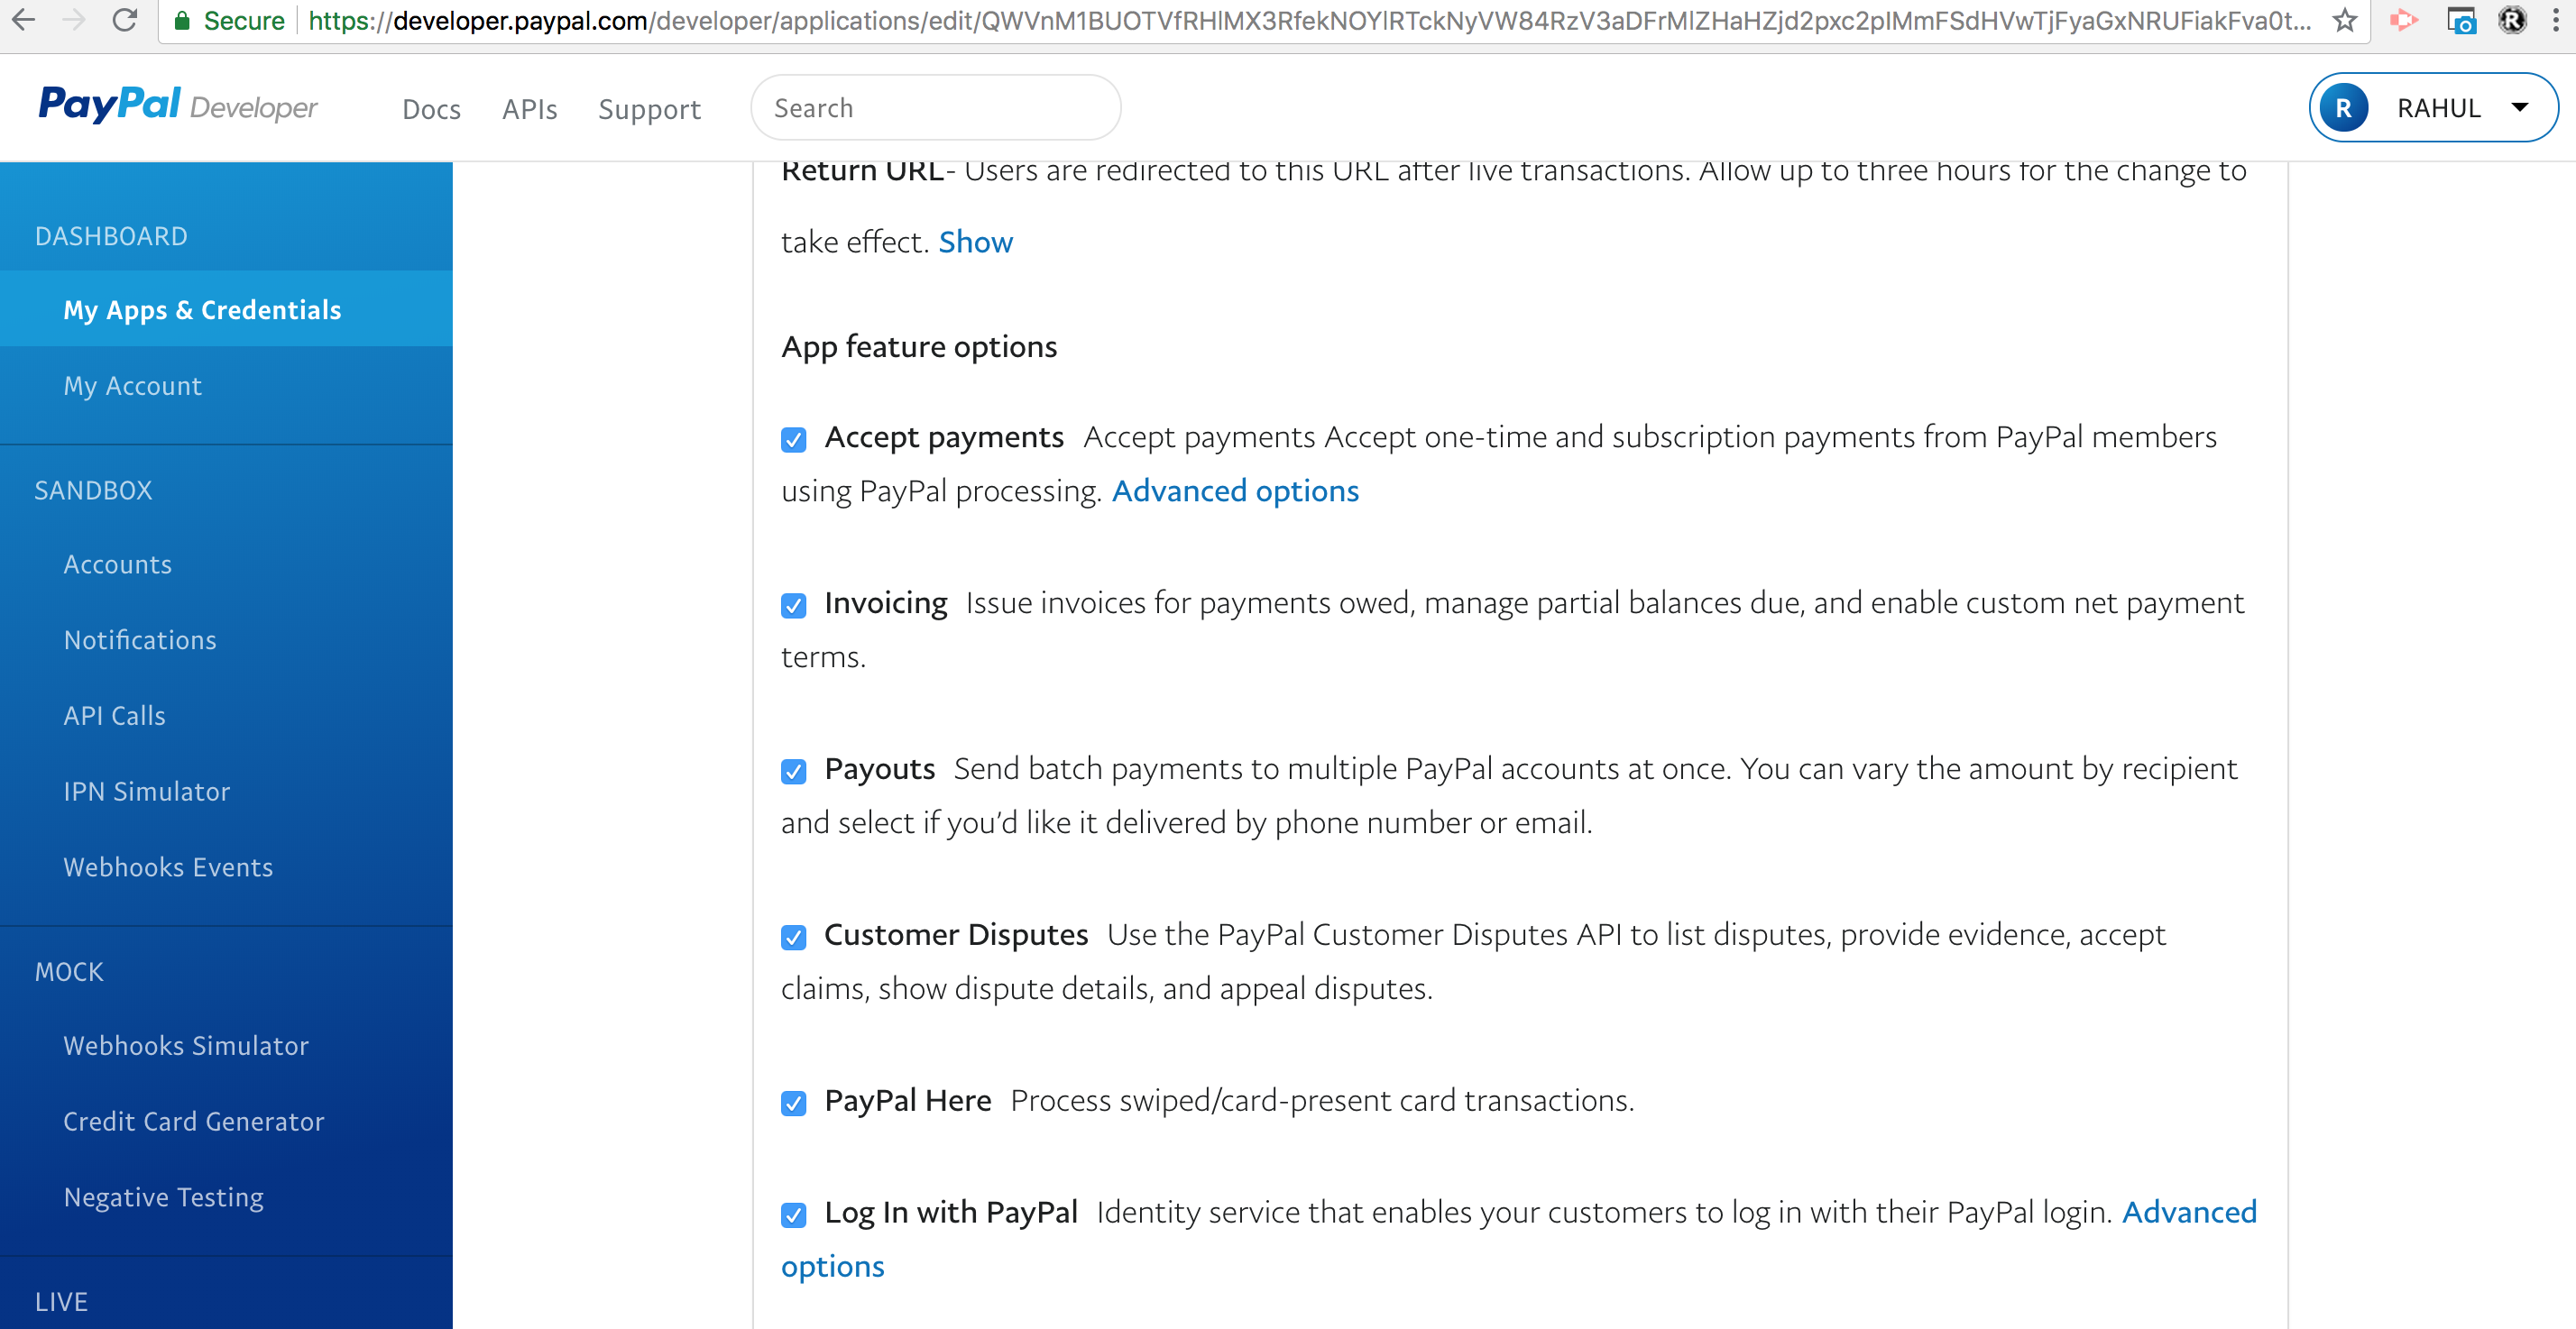 Paypal Payout API throws 500 internal server error - PayPal Community